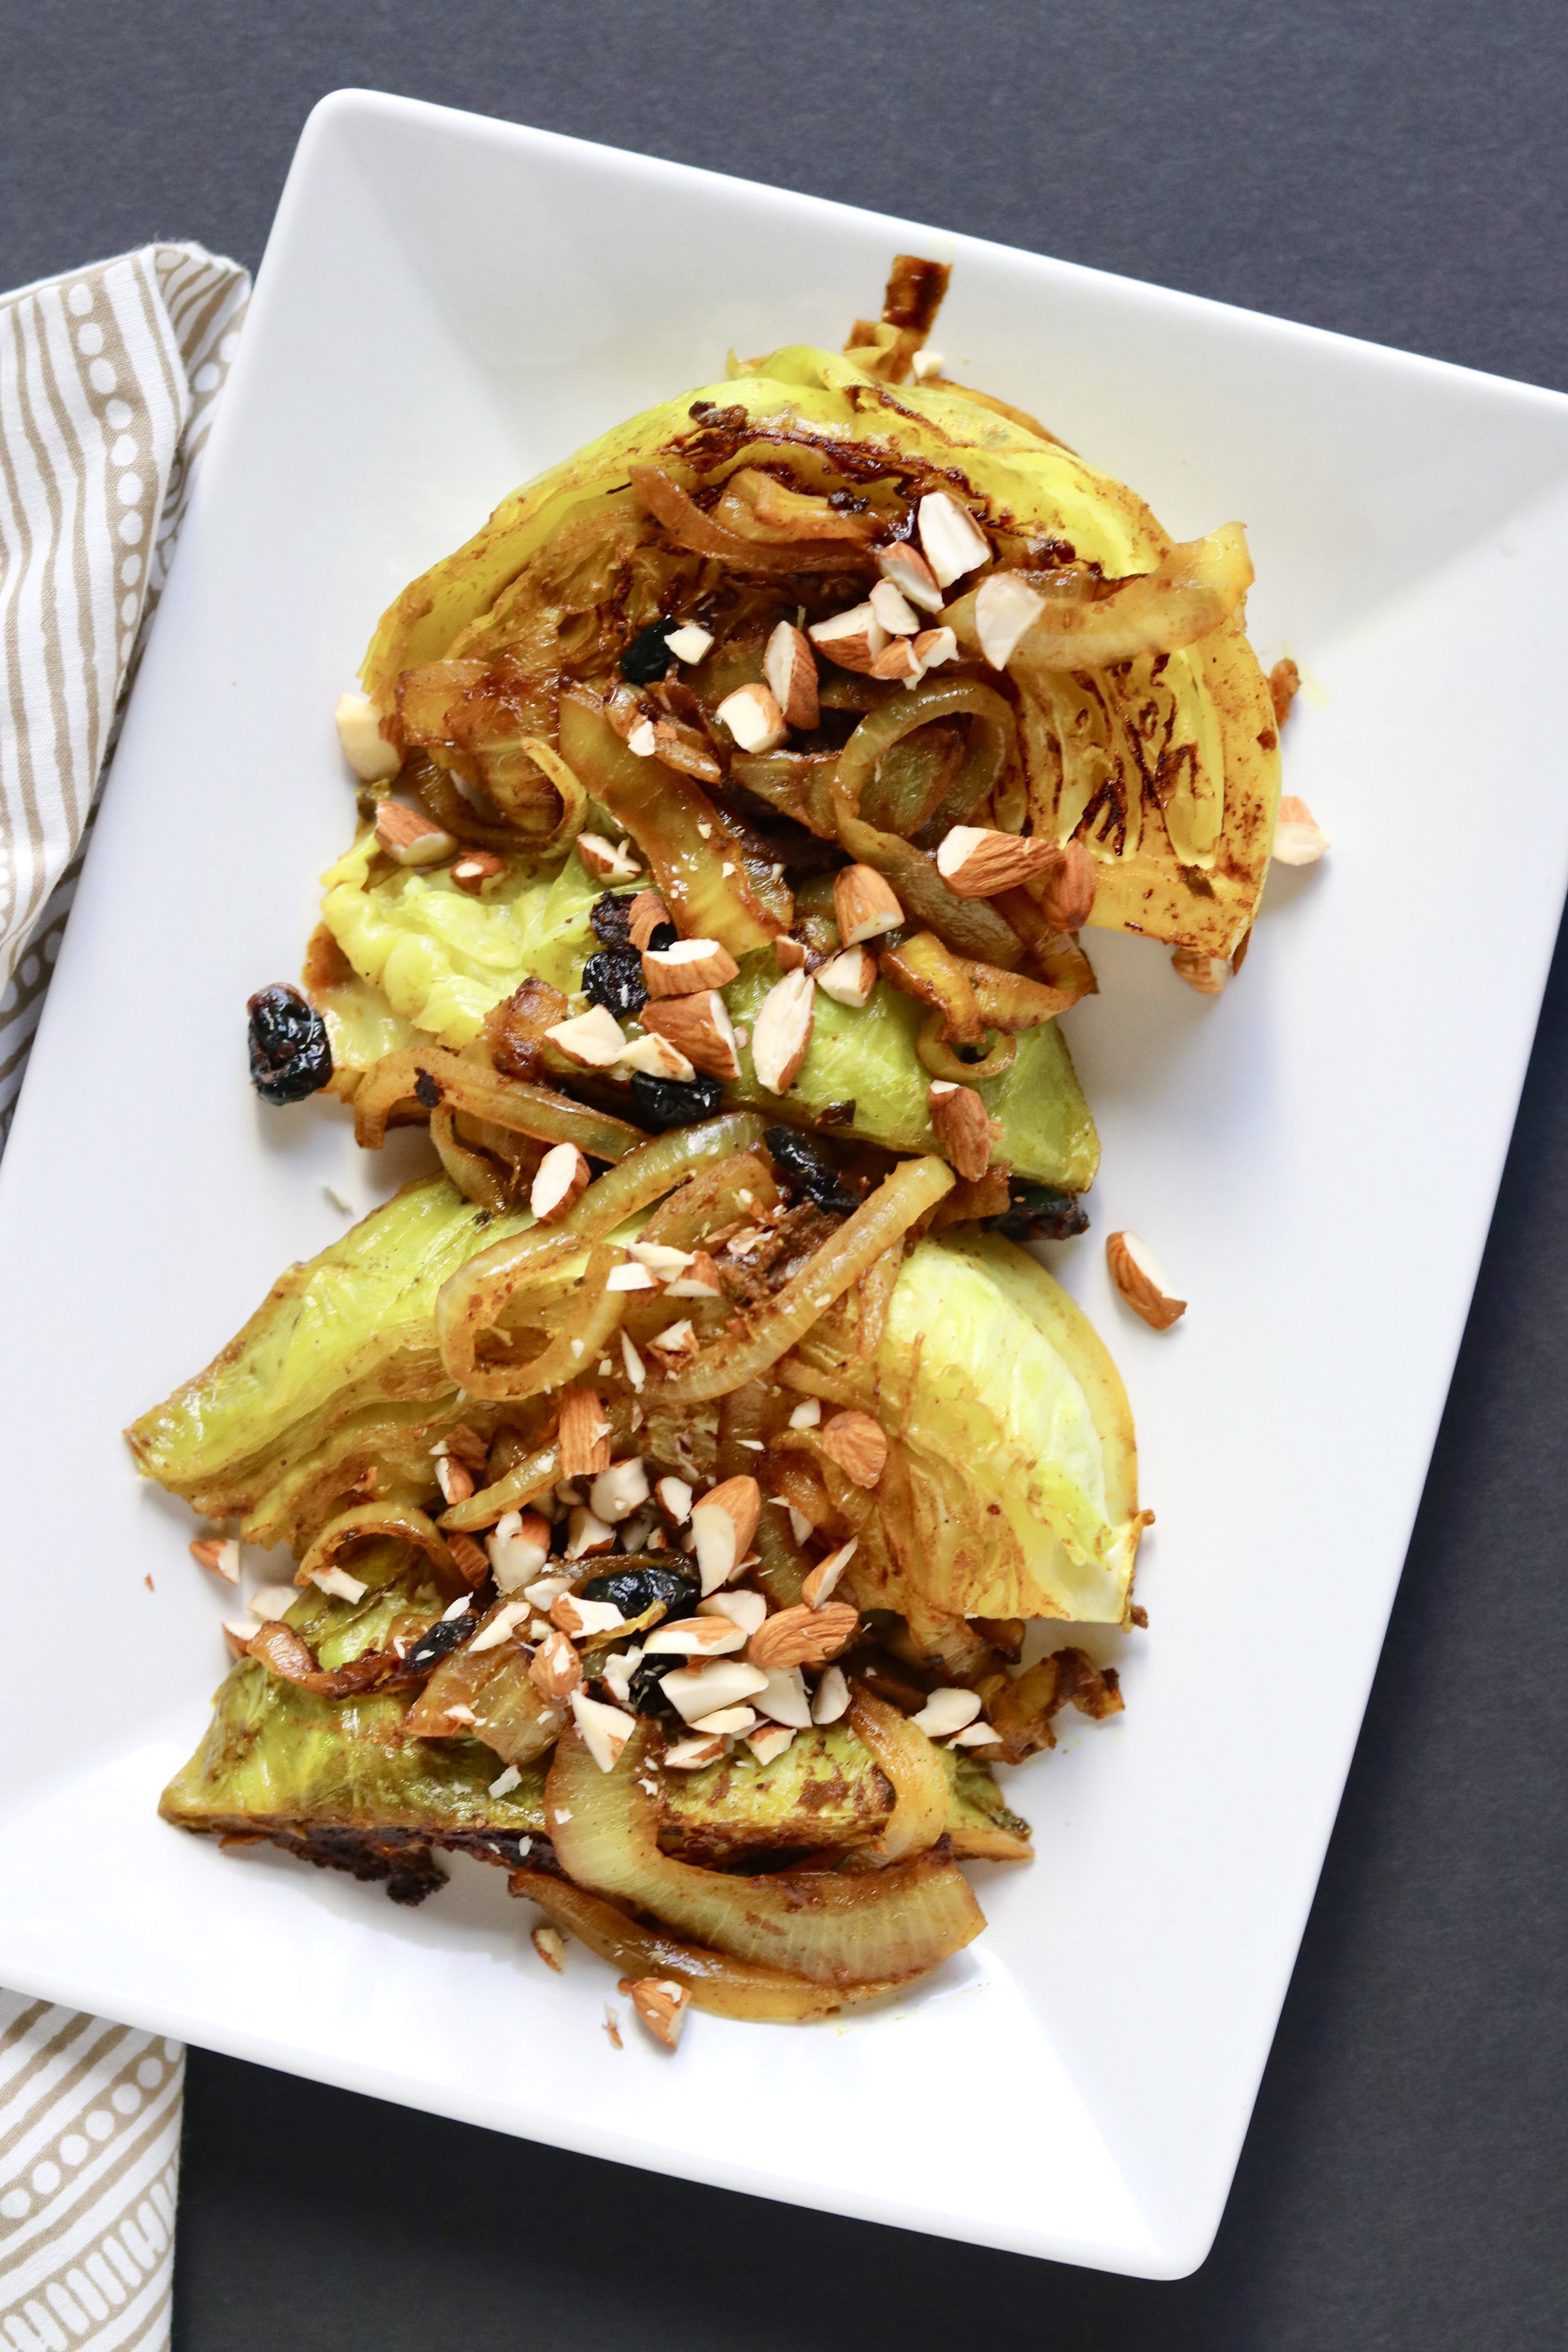 Curried Cabbage and Caramelized Onions I'd Eat That Food